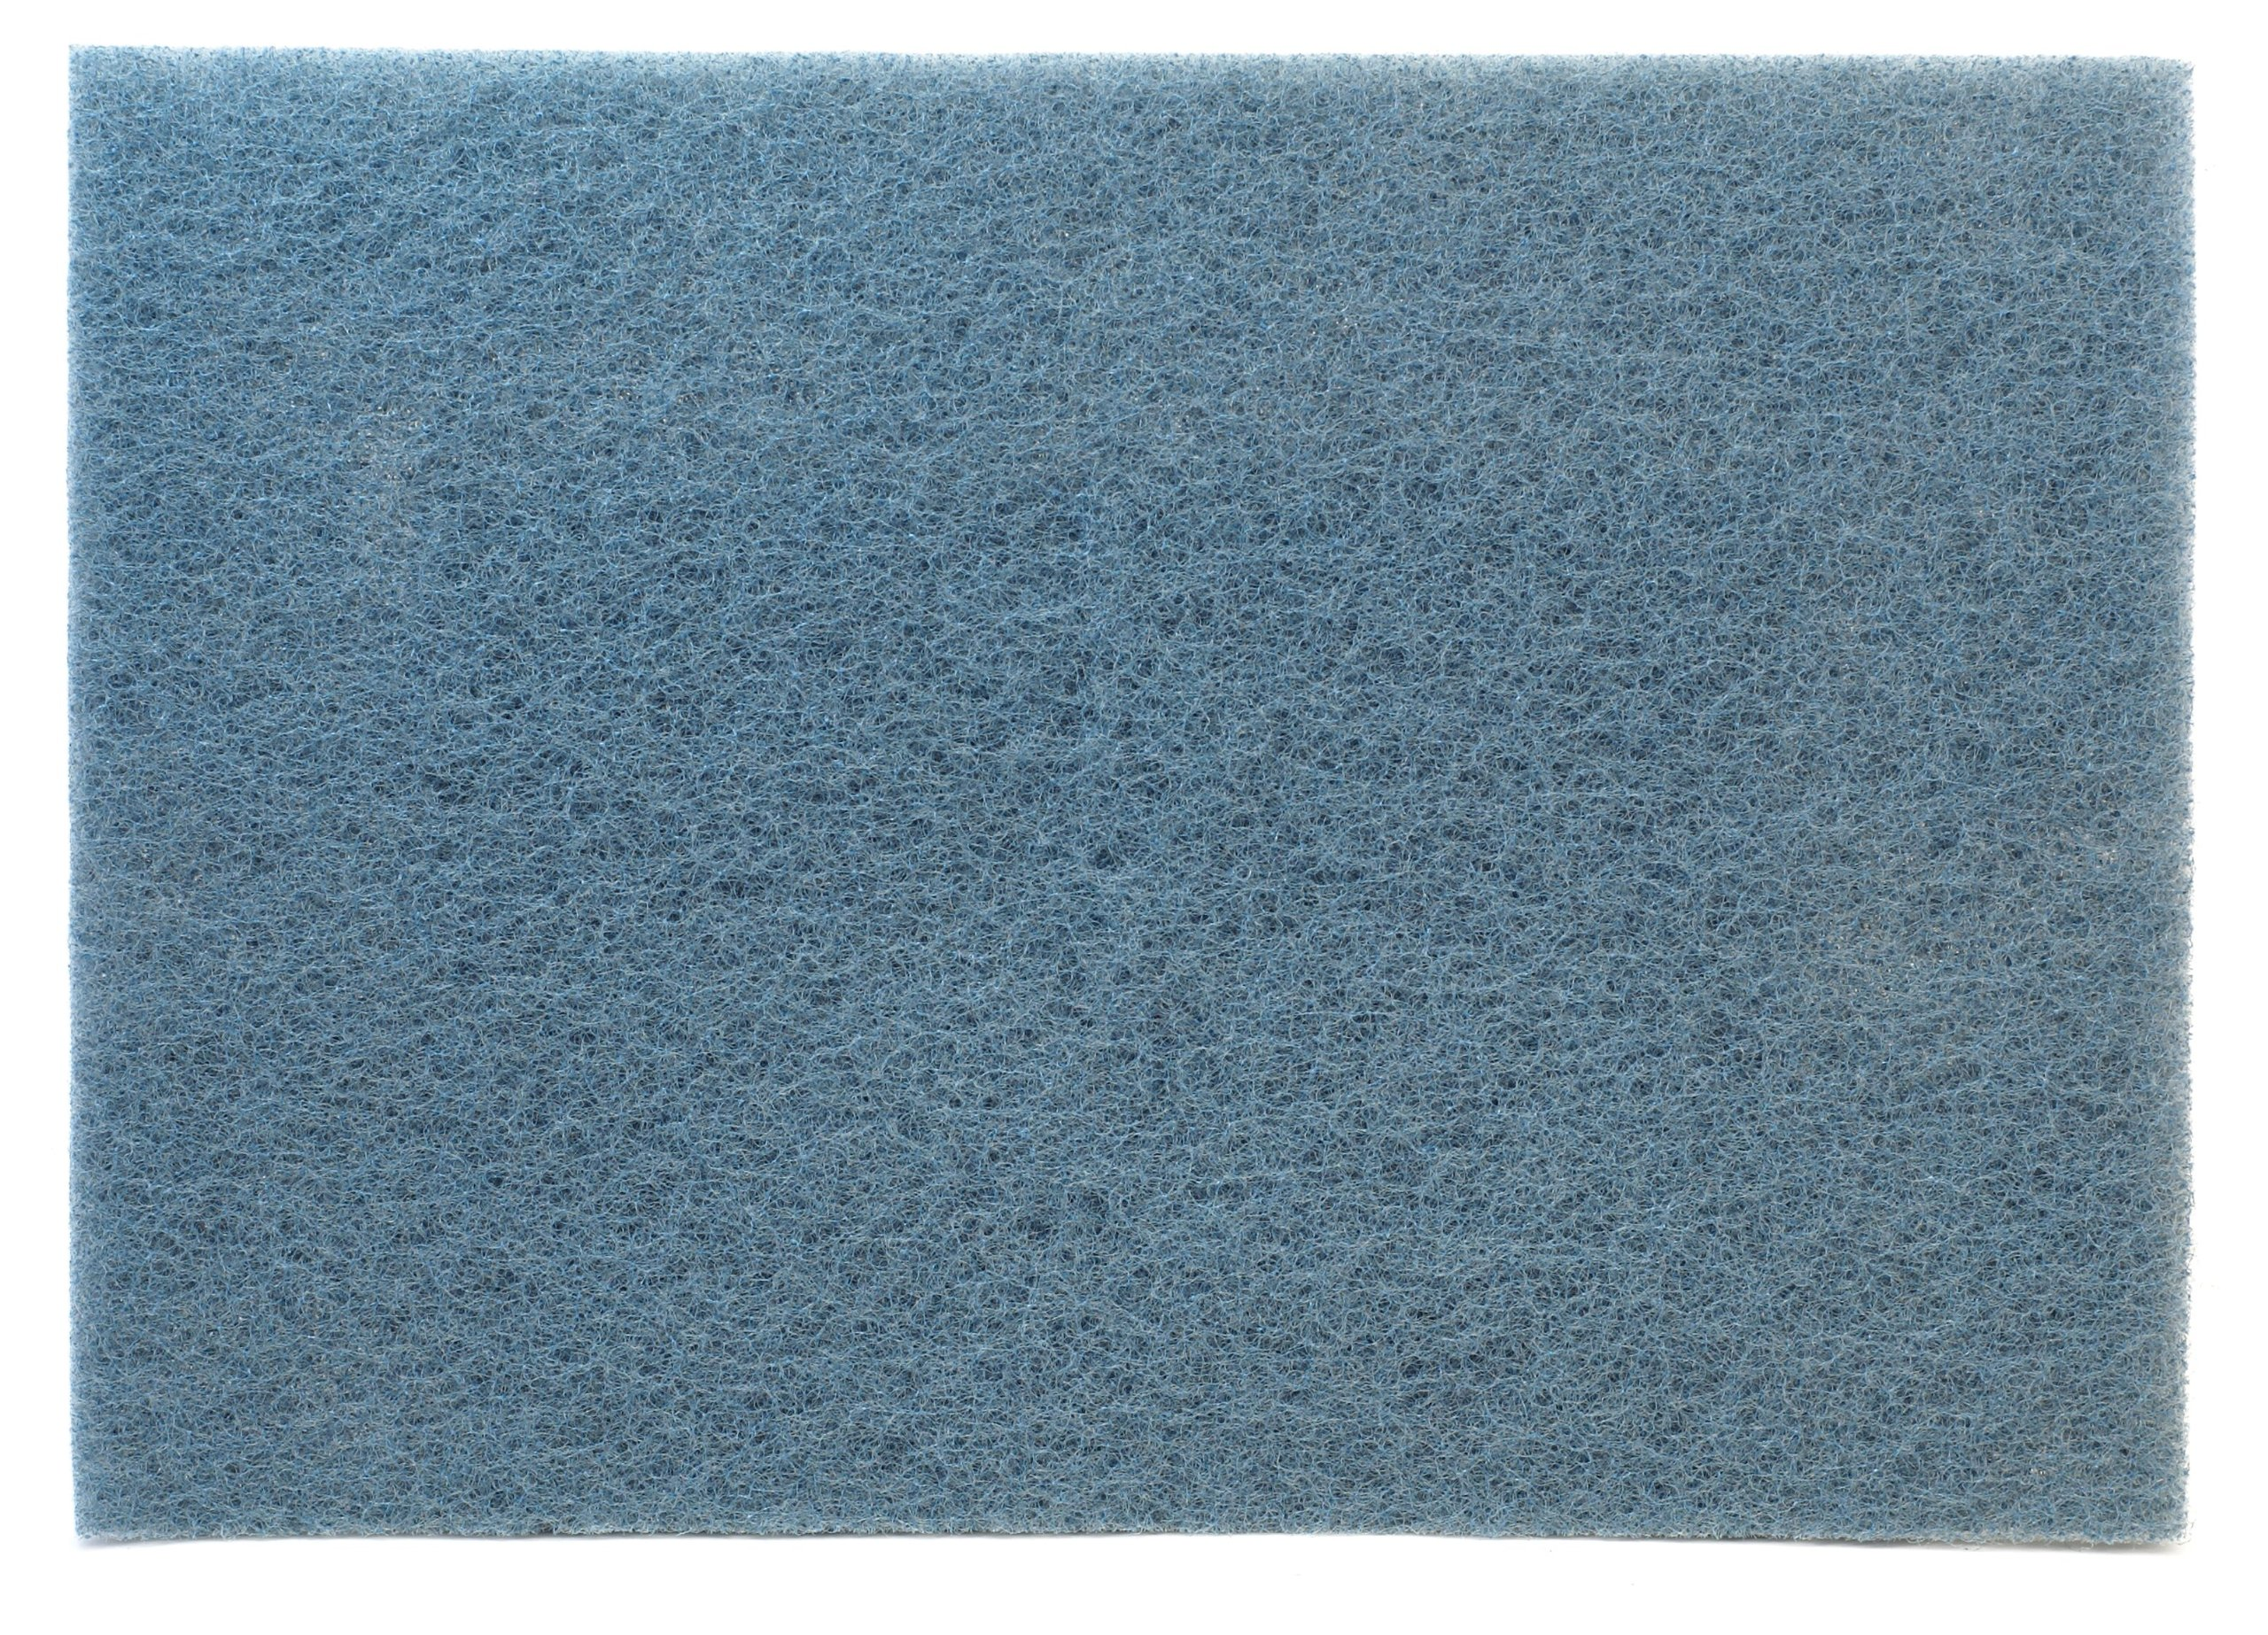 3M Blue Cleaner Pad 5300, 20'' x 14'' (Case of 10) by 3M